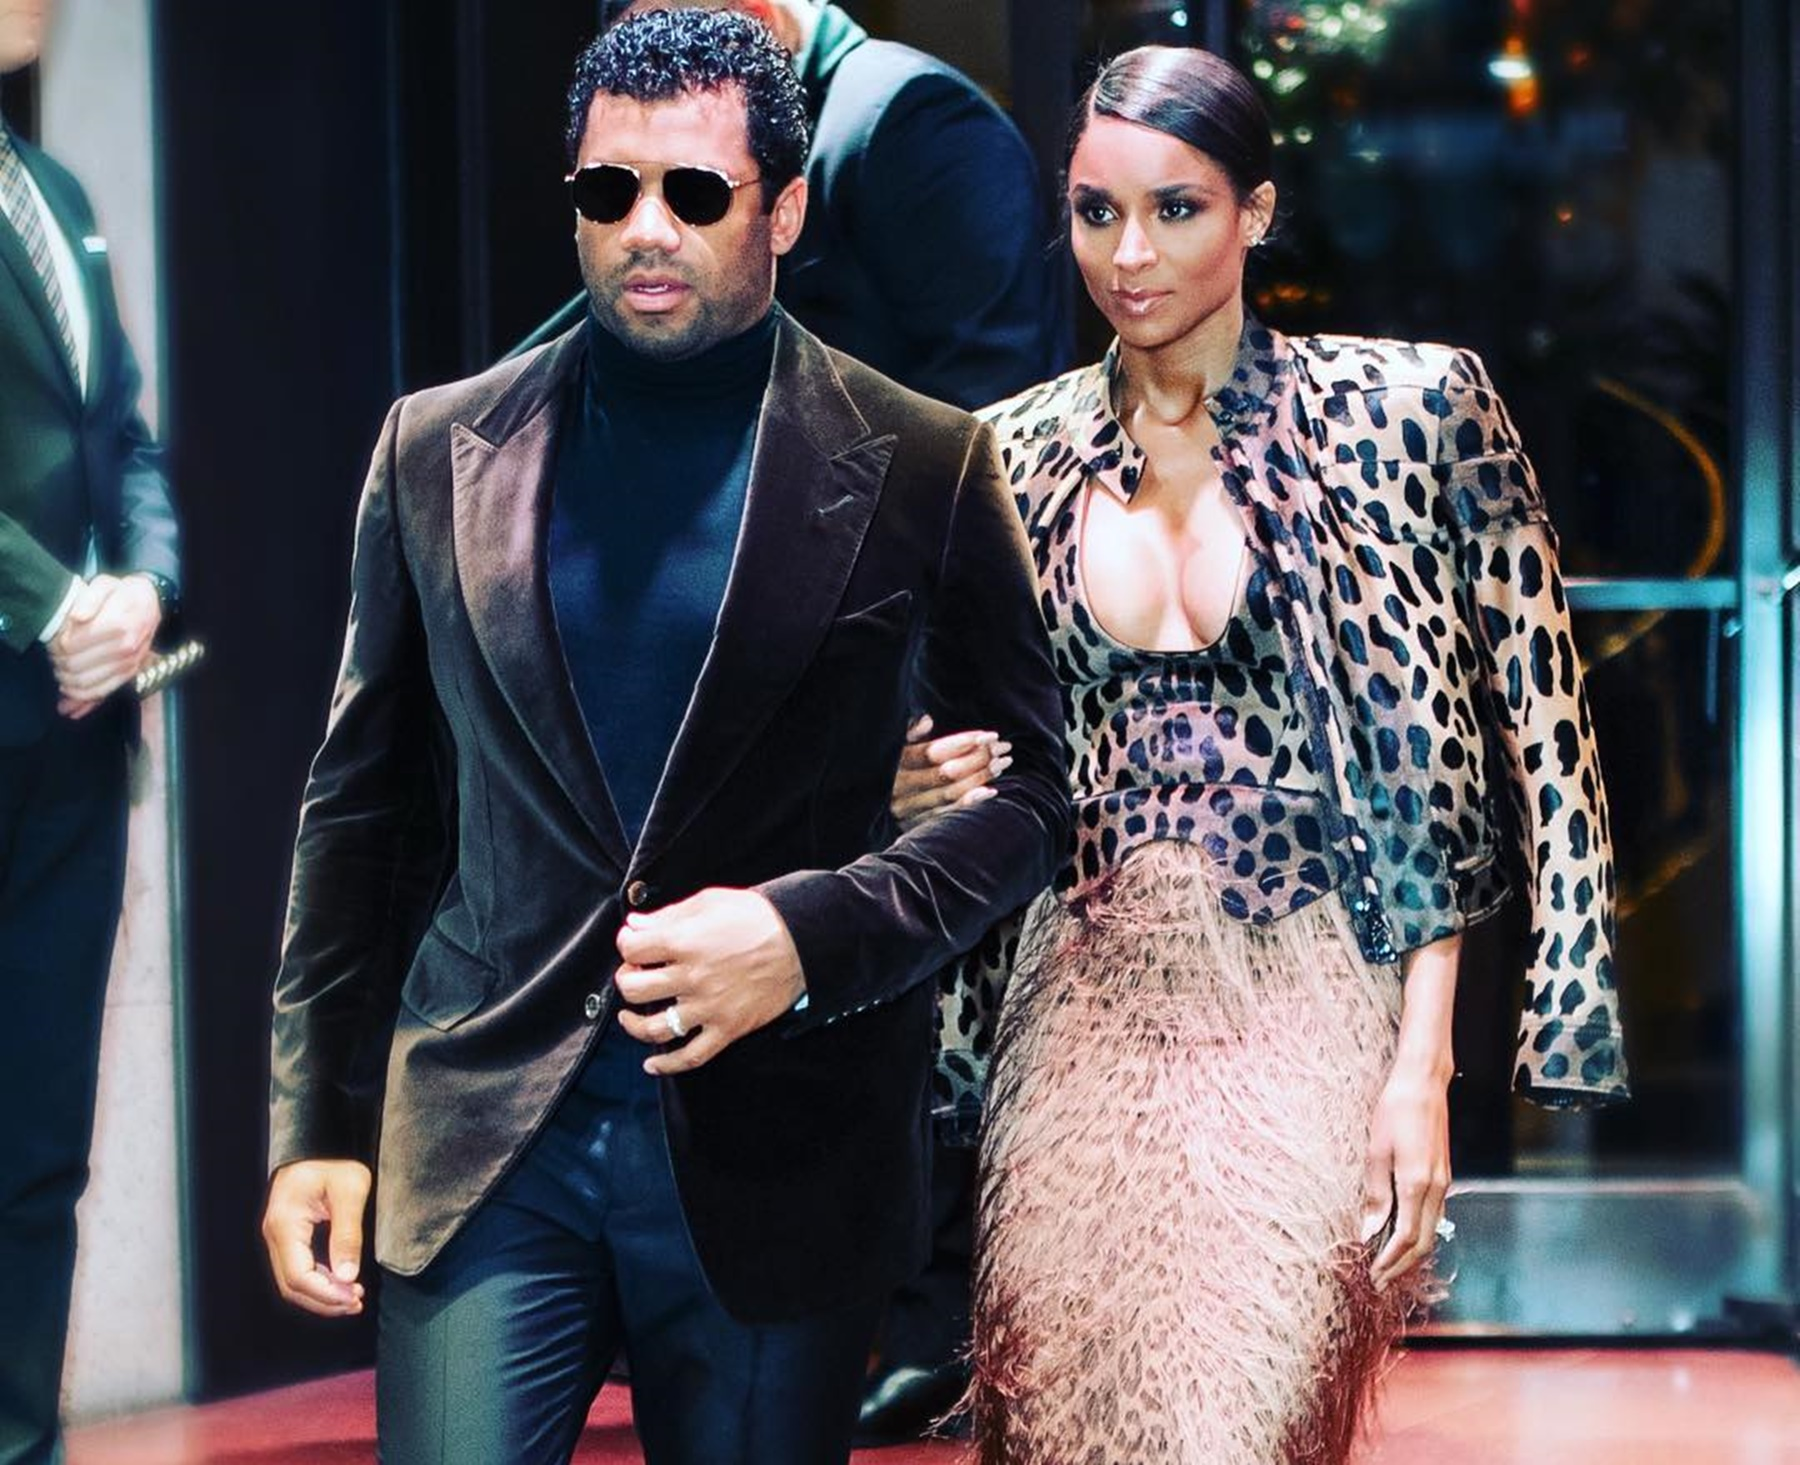 ciara-shares-picture-of-her-handsome-husband-russell-wilson-fans-go-wild-over-his-huge-feet-see-what-got-them-talking